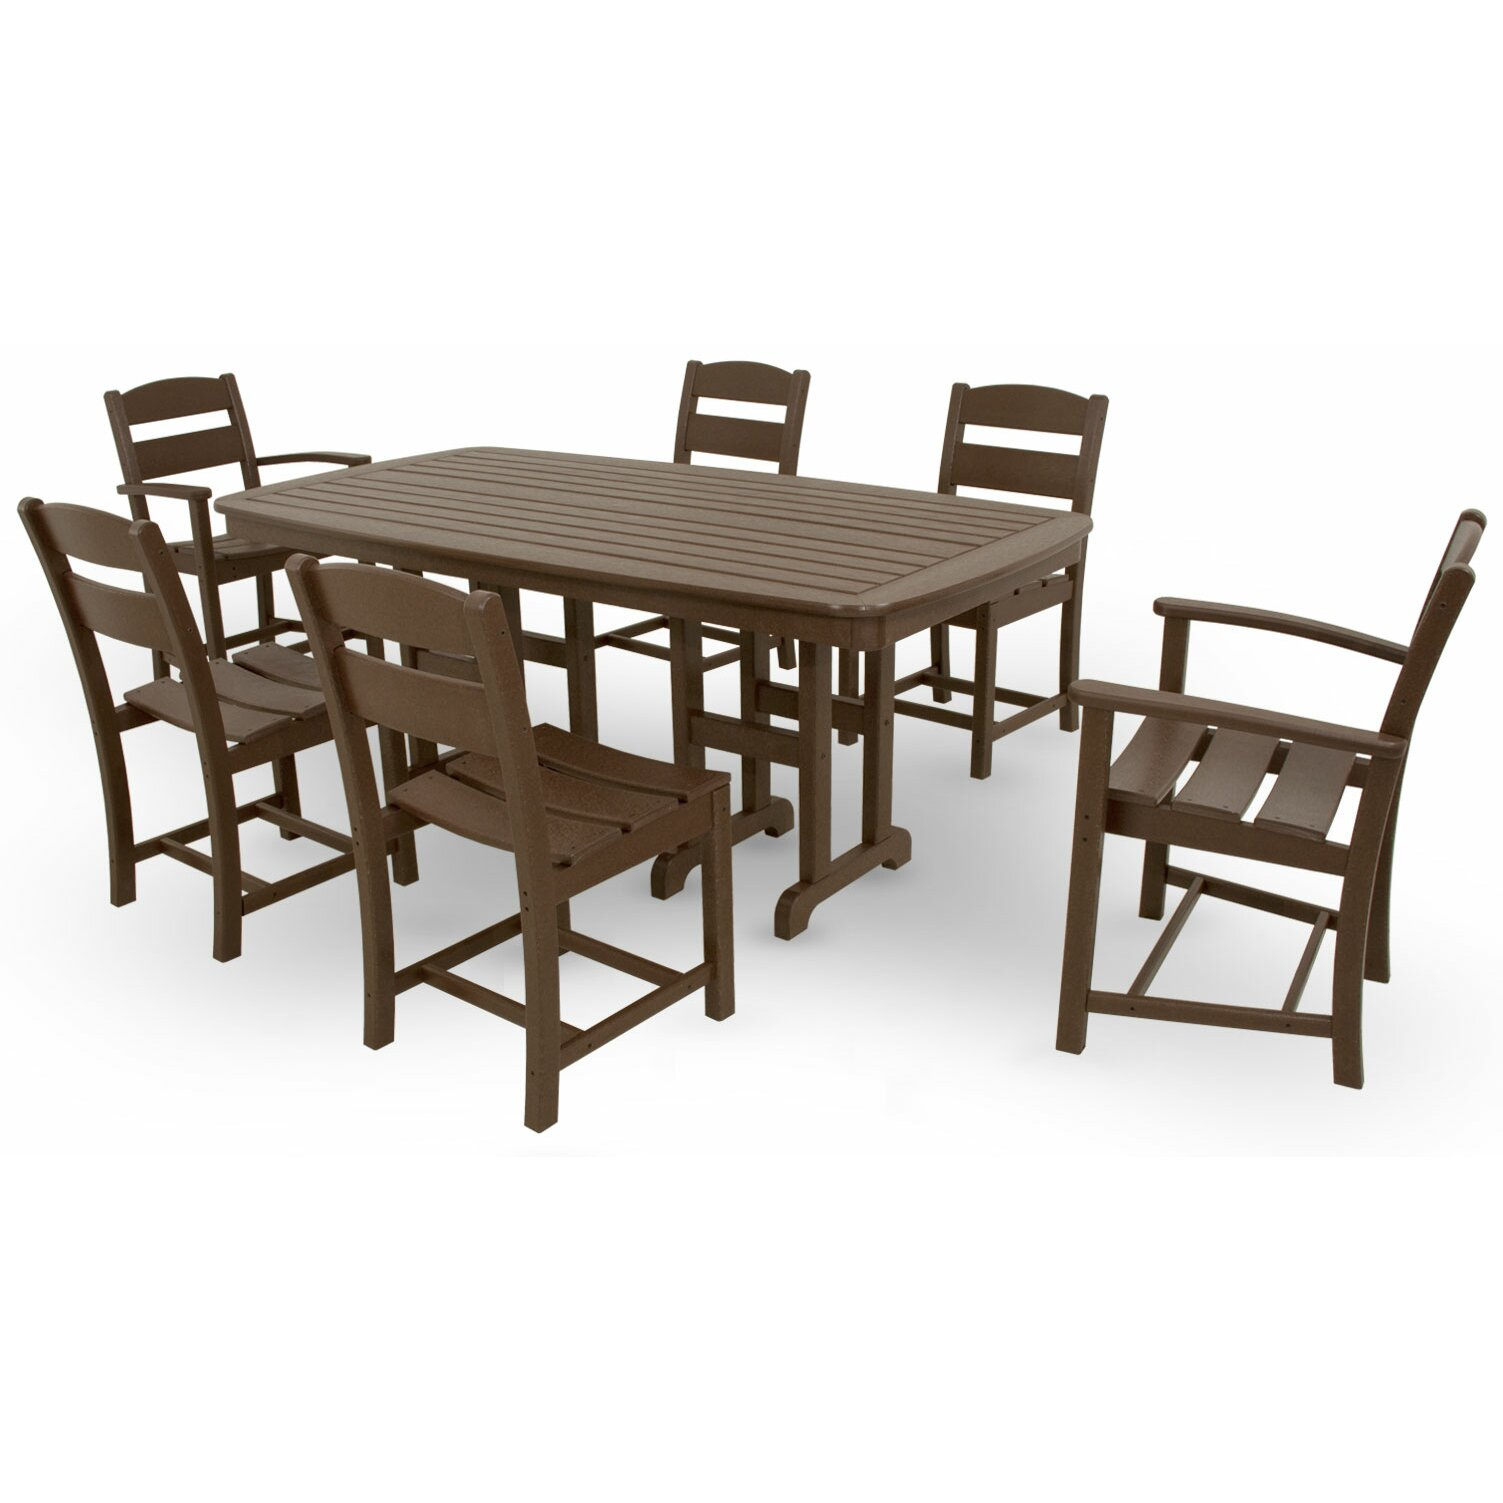 Ivy terrace ivy terrace 7 piece dining set reviews wayfair for 7 piece dining set